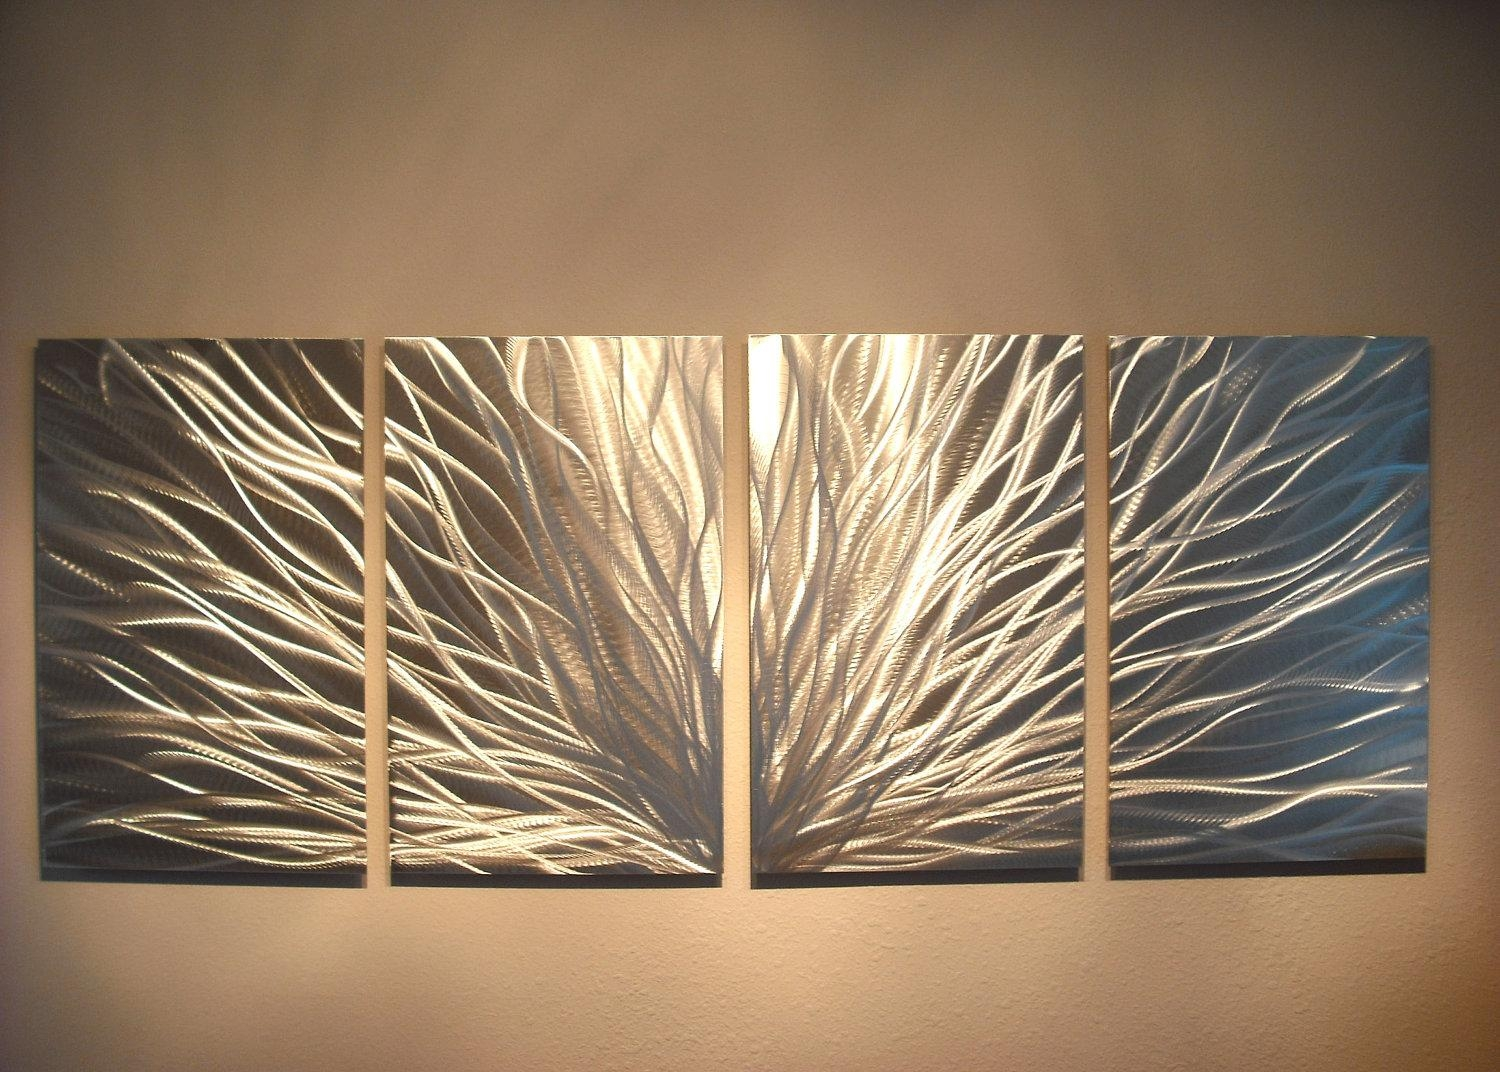 Metal Wall Art Decor Abstract Aluminum Contemporary Modern With Contemporary Metal Wall Art Sculpture (View 12 of 20)